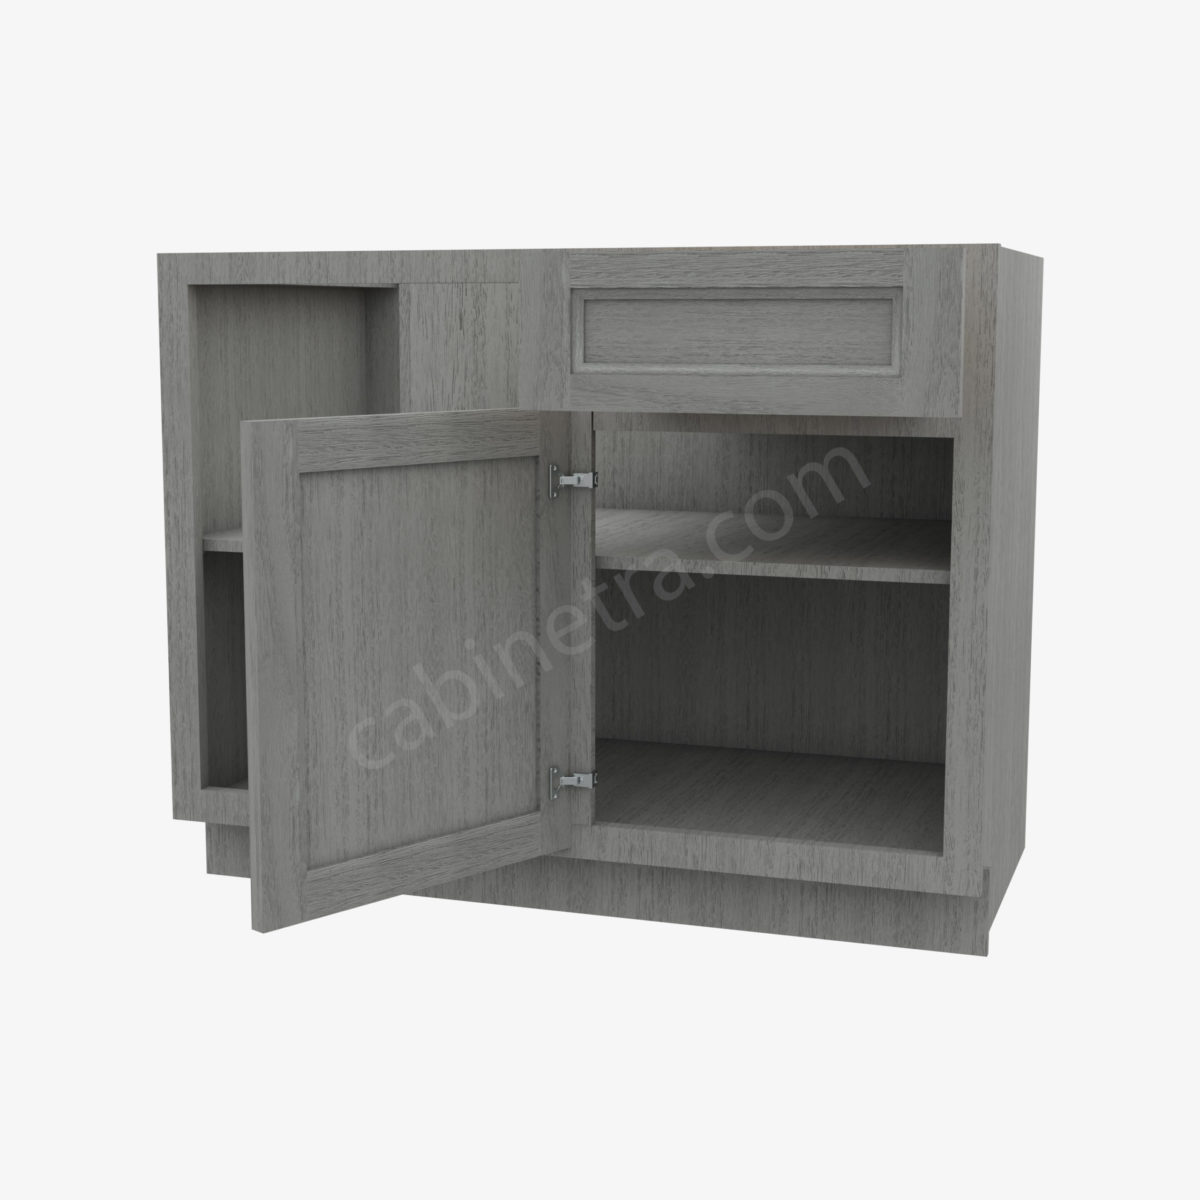 TG BBLC45 48 42W 5 Forevermark Midtown Grey Cabinetra scaled